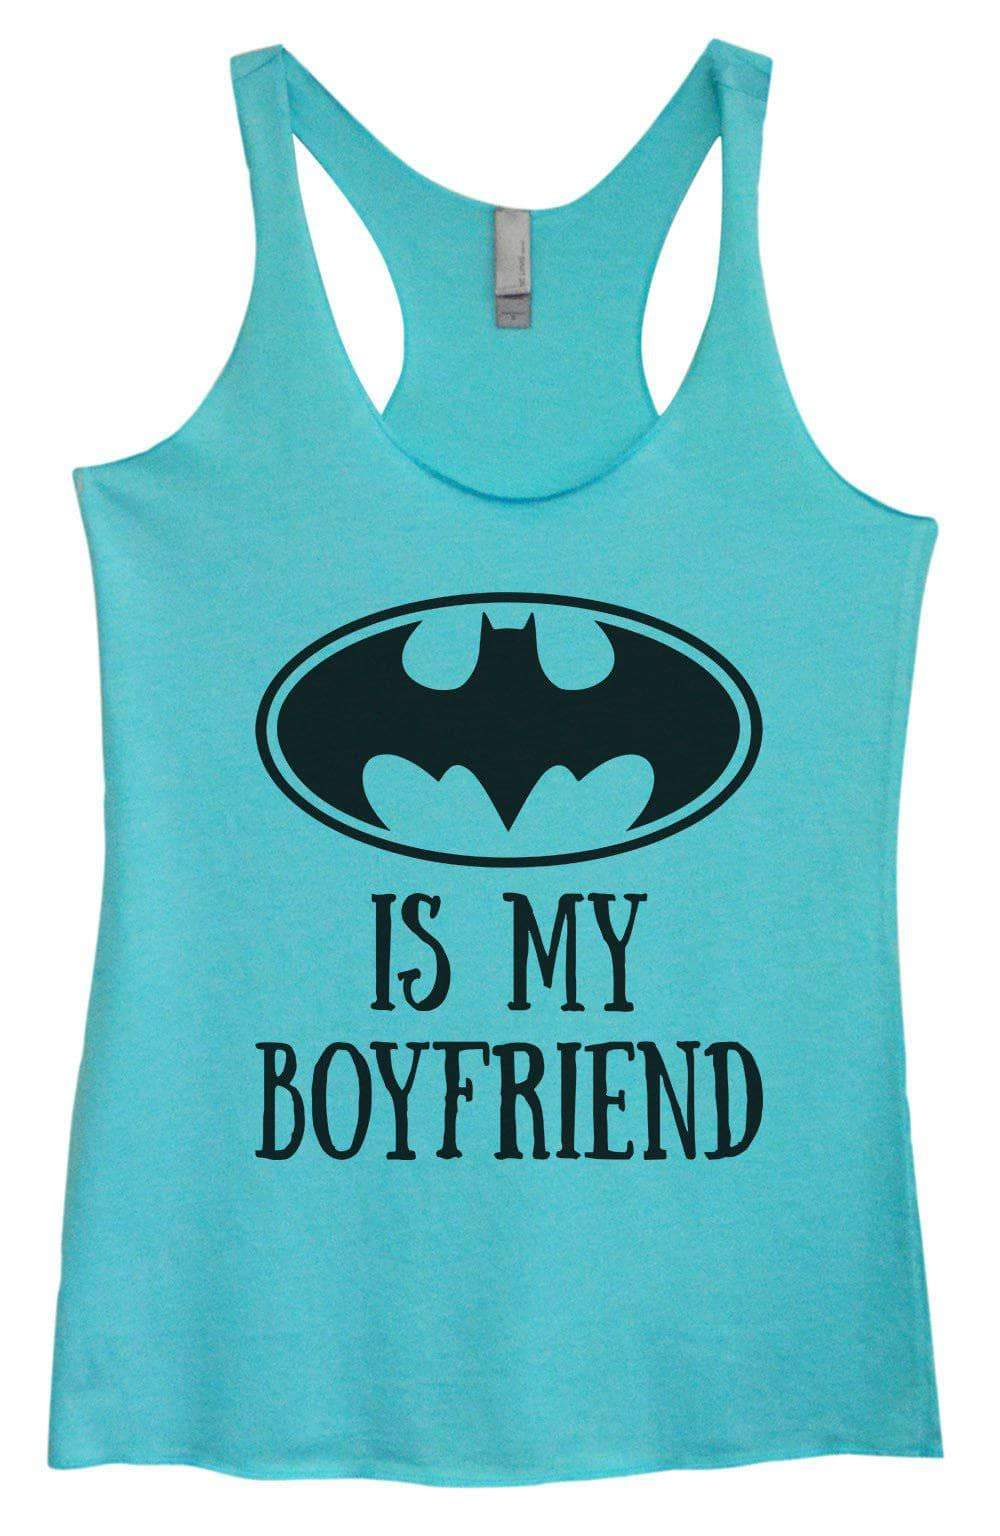 Womens Tri-Blend Tank Top - Batman Is My Boyfriend Small Womens Tank Tops Vintage Blue